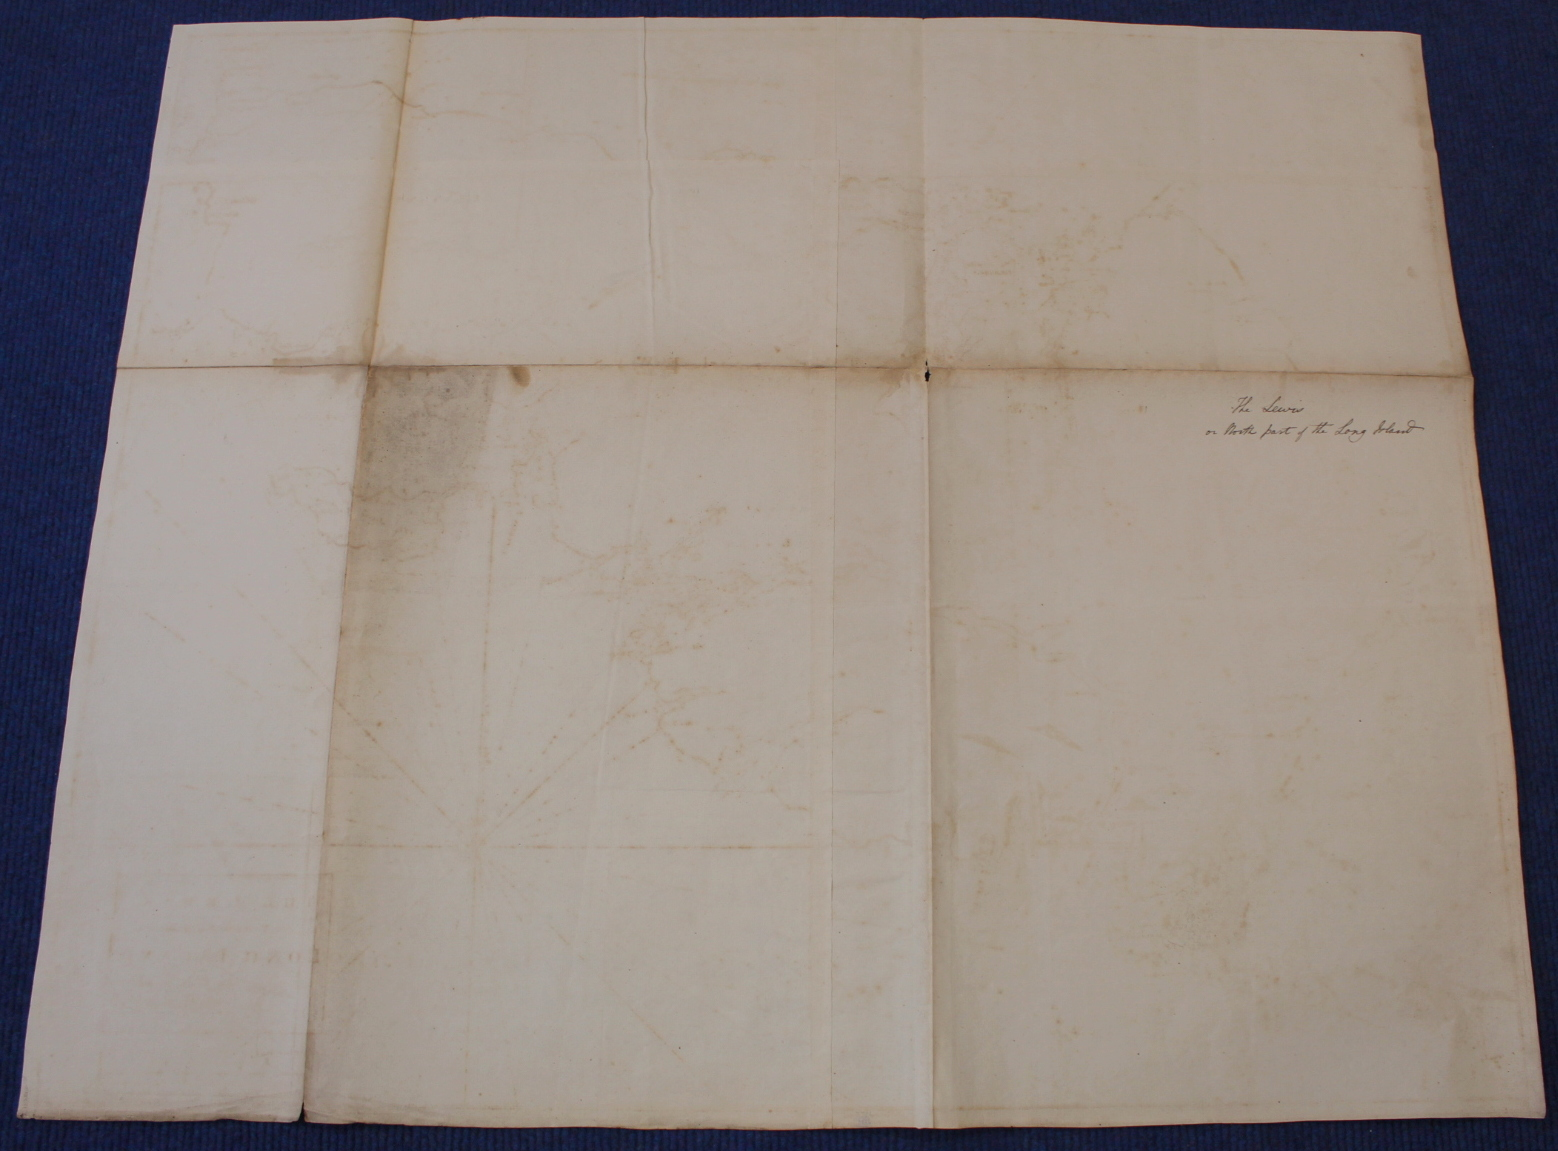 MACKENZIE MURDOCH (SNR.).A General Chart of the West Coast & Western Islands of Scotland from - Image 20 of 66